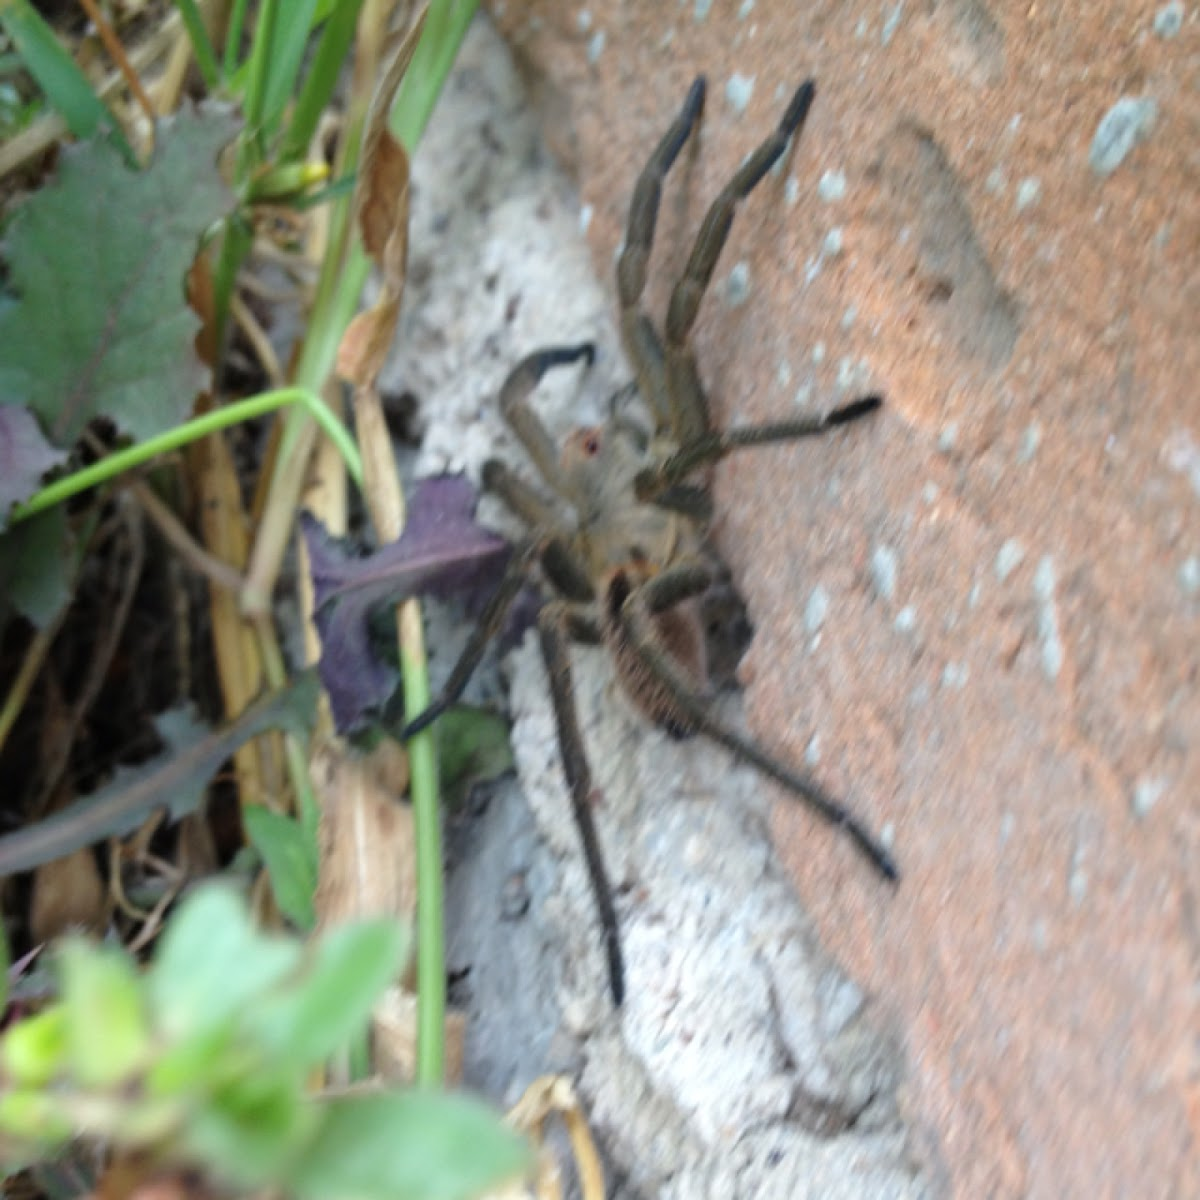 Possibly a wolf spider